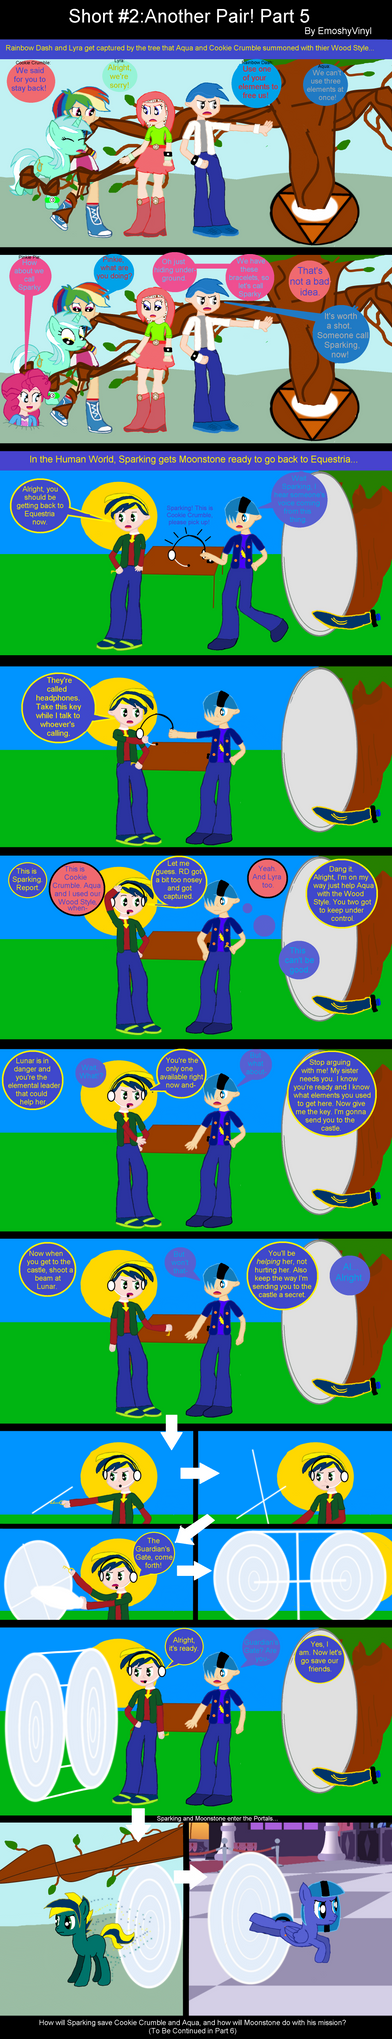 Short #2: Another Pair! Part 5 by EmoshyVinyl